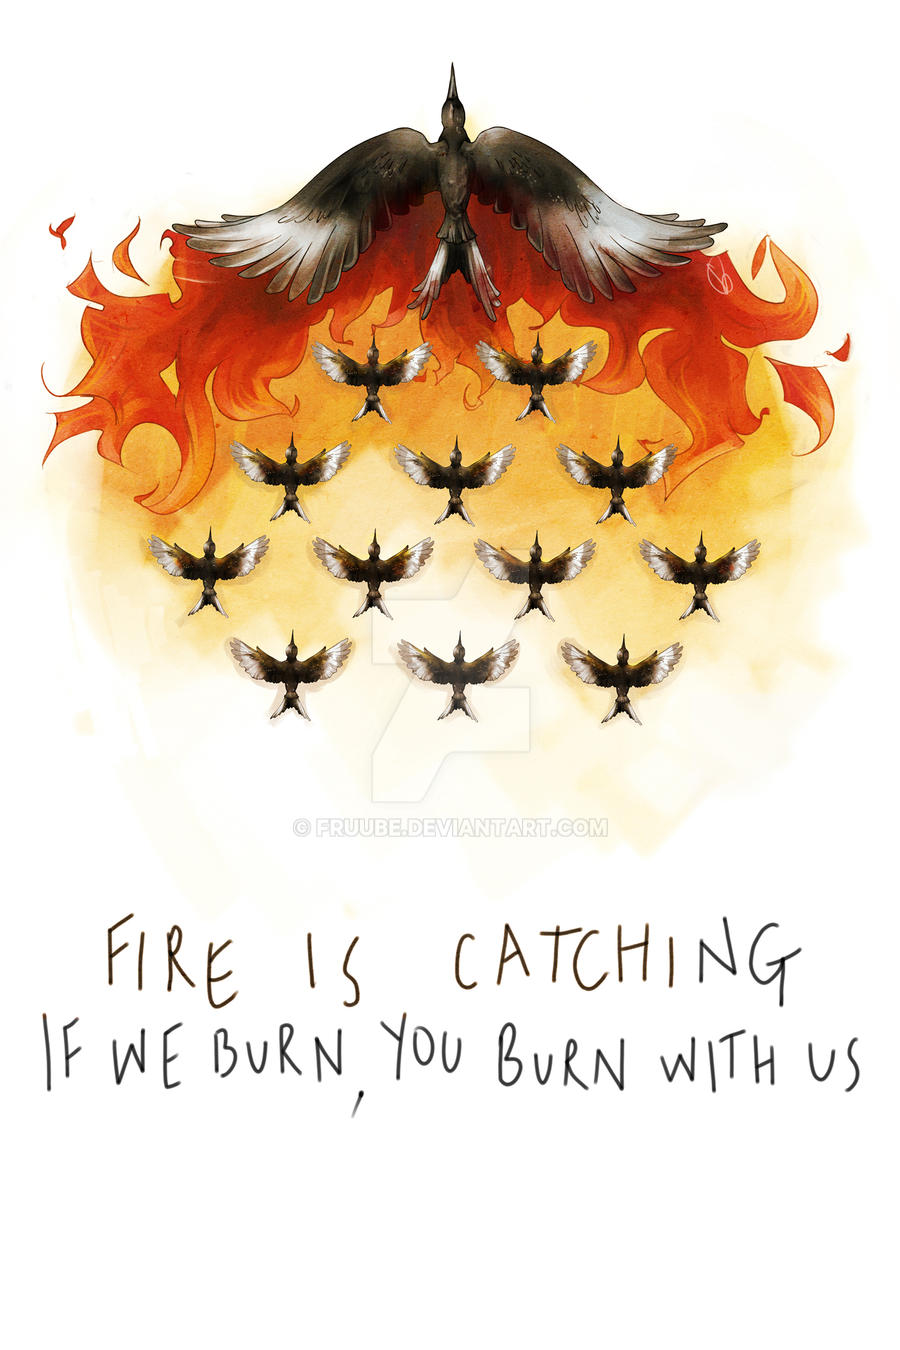 If we burn, you burn with us by Fruube